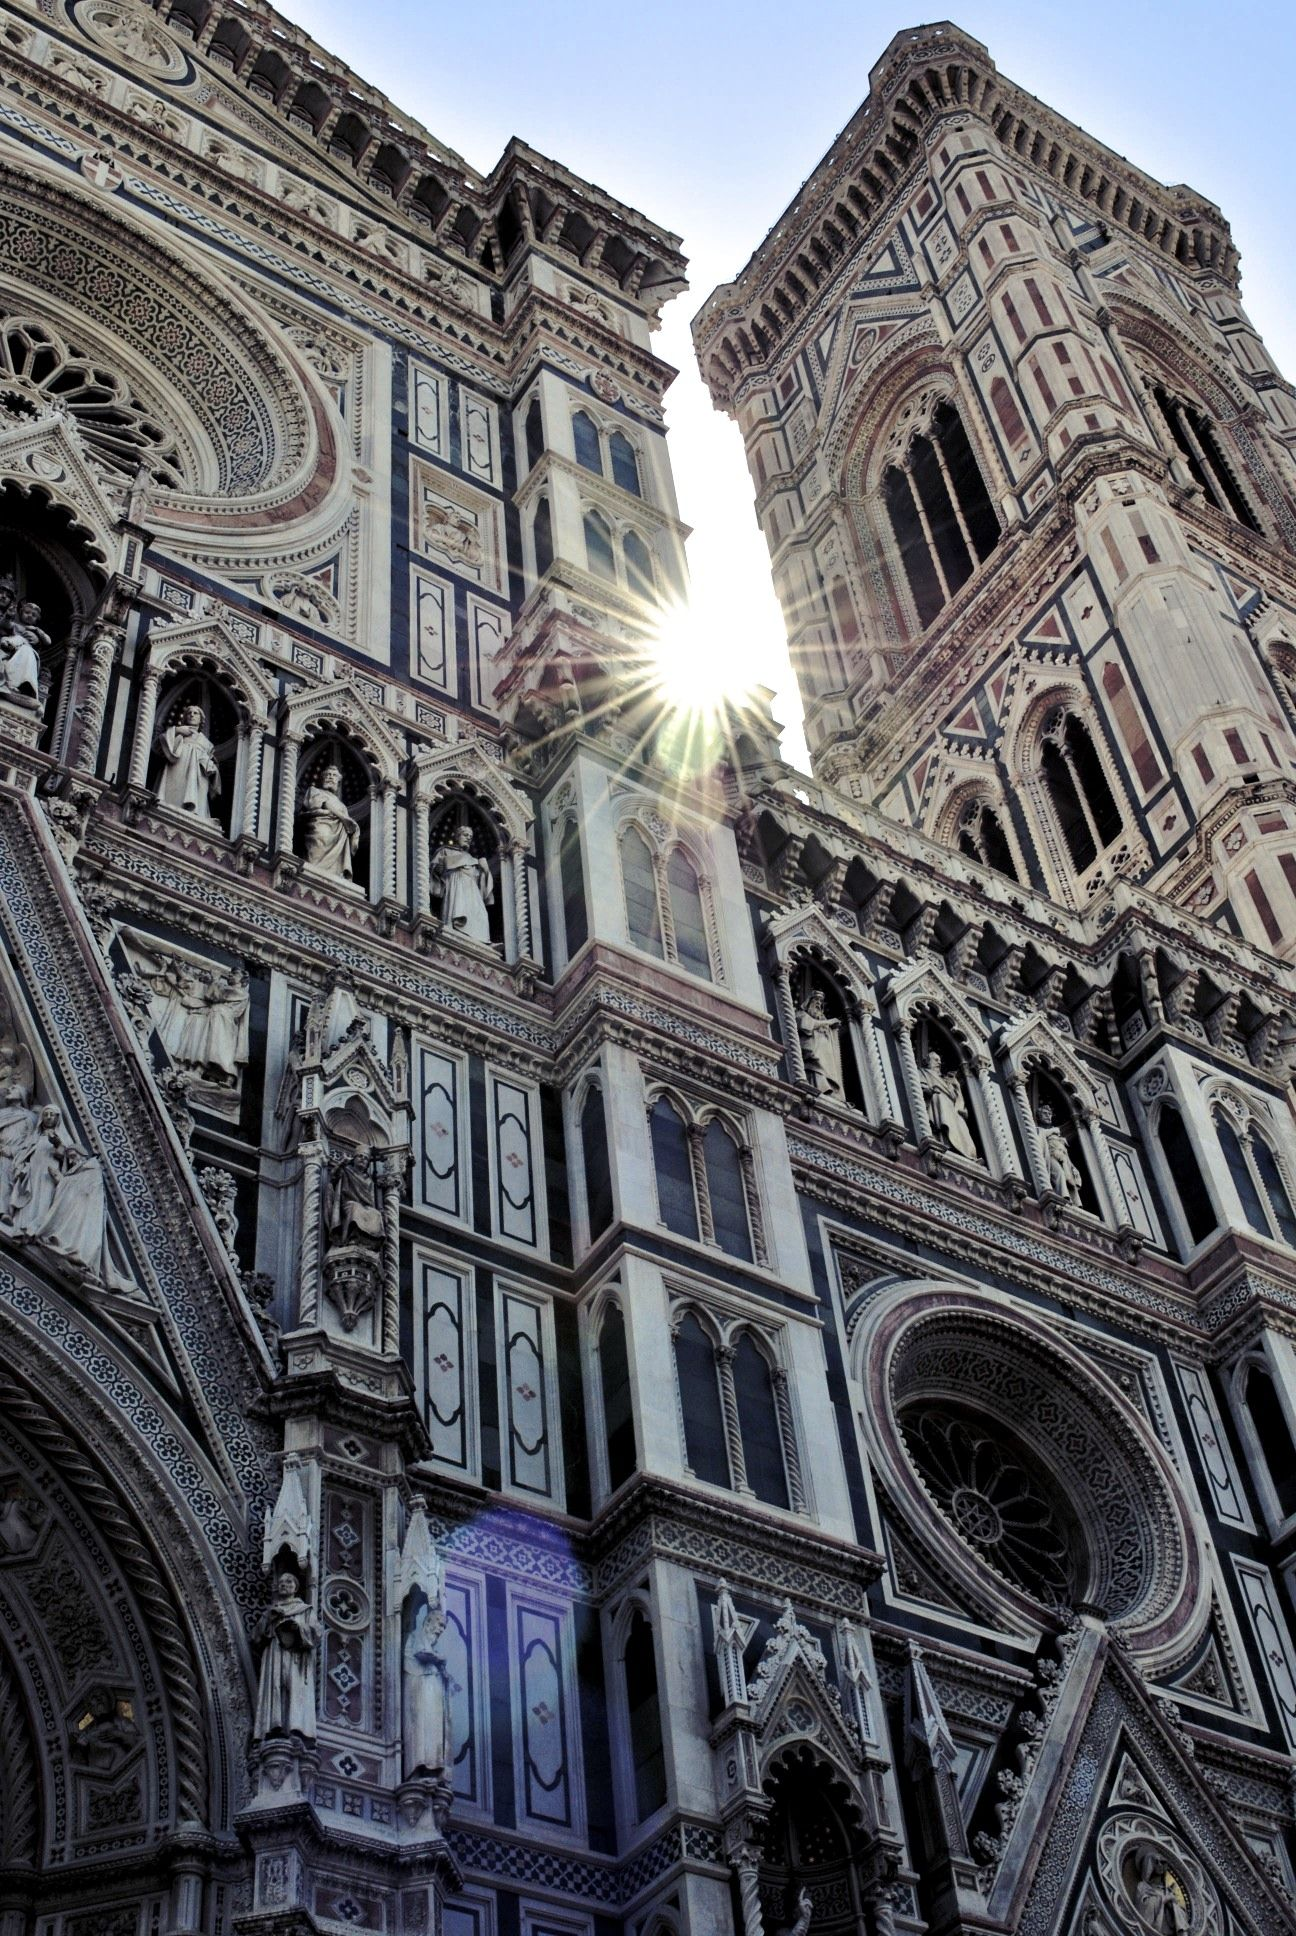 AFAR.com Highlight: Morning Sun at Il Duomo, Florence by Michela Baxter